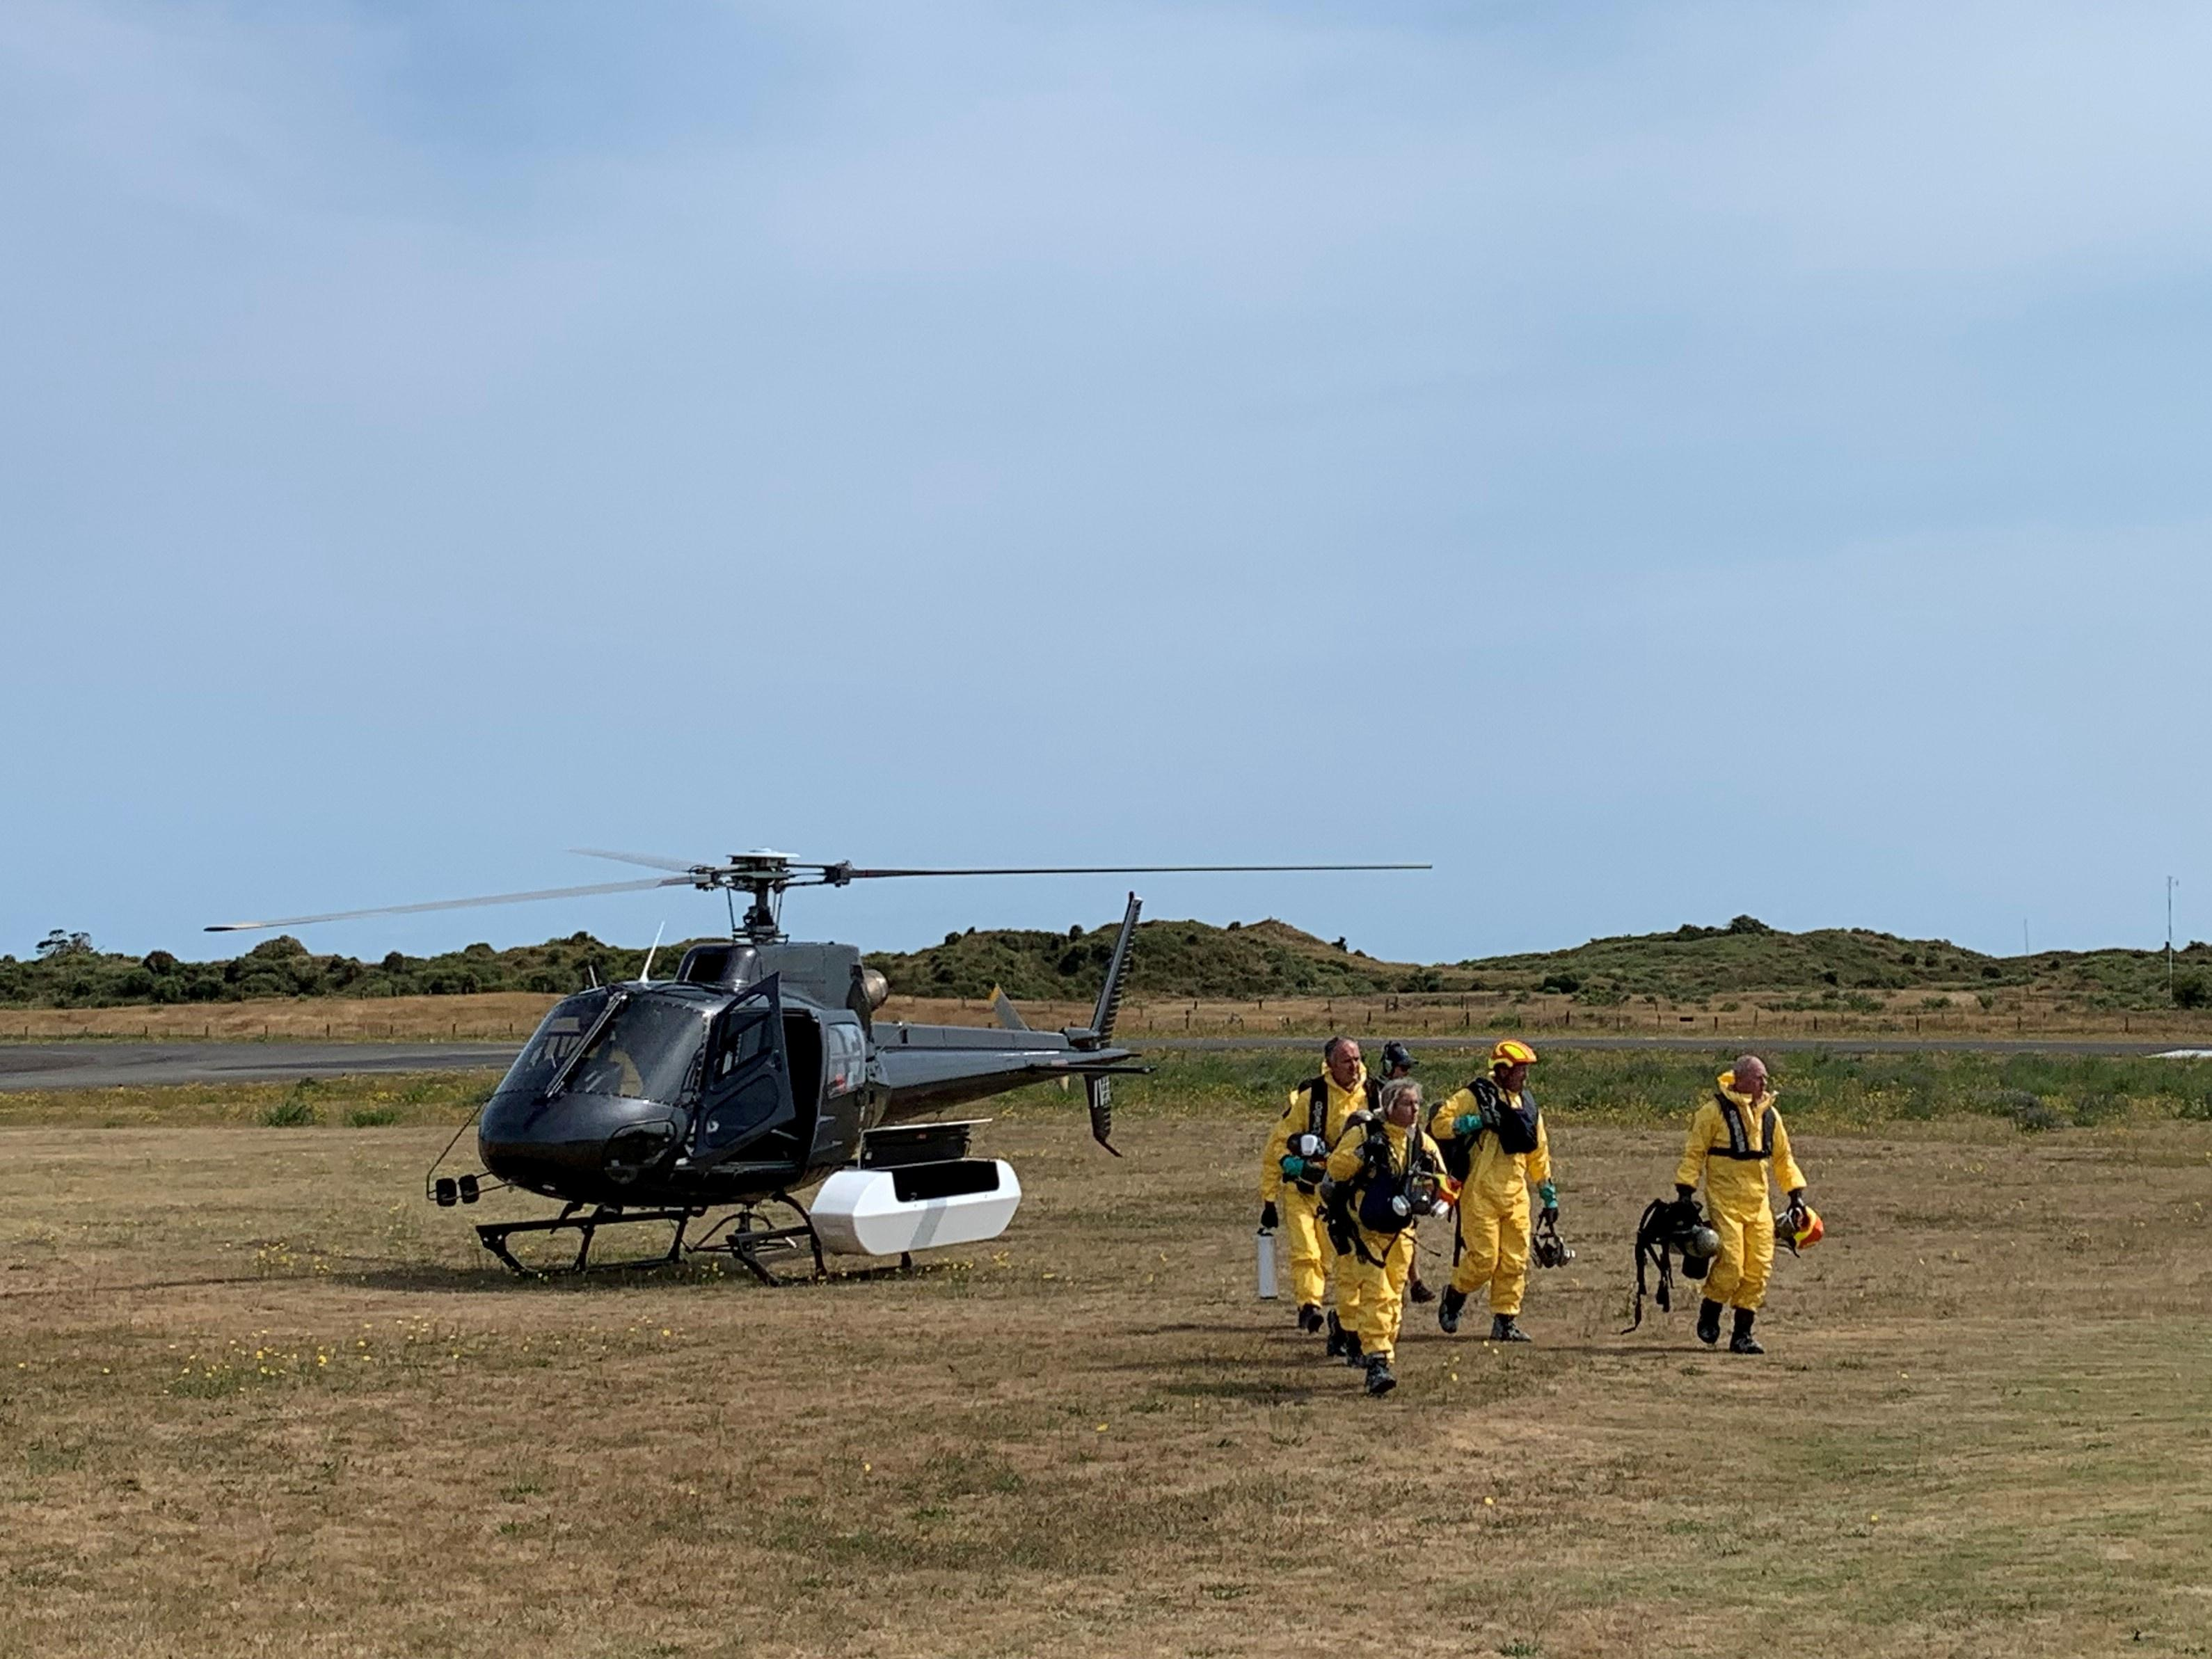 New Zealand recovery teams return to volcanic island, two remain...